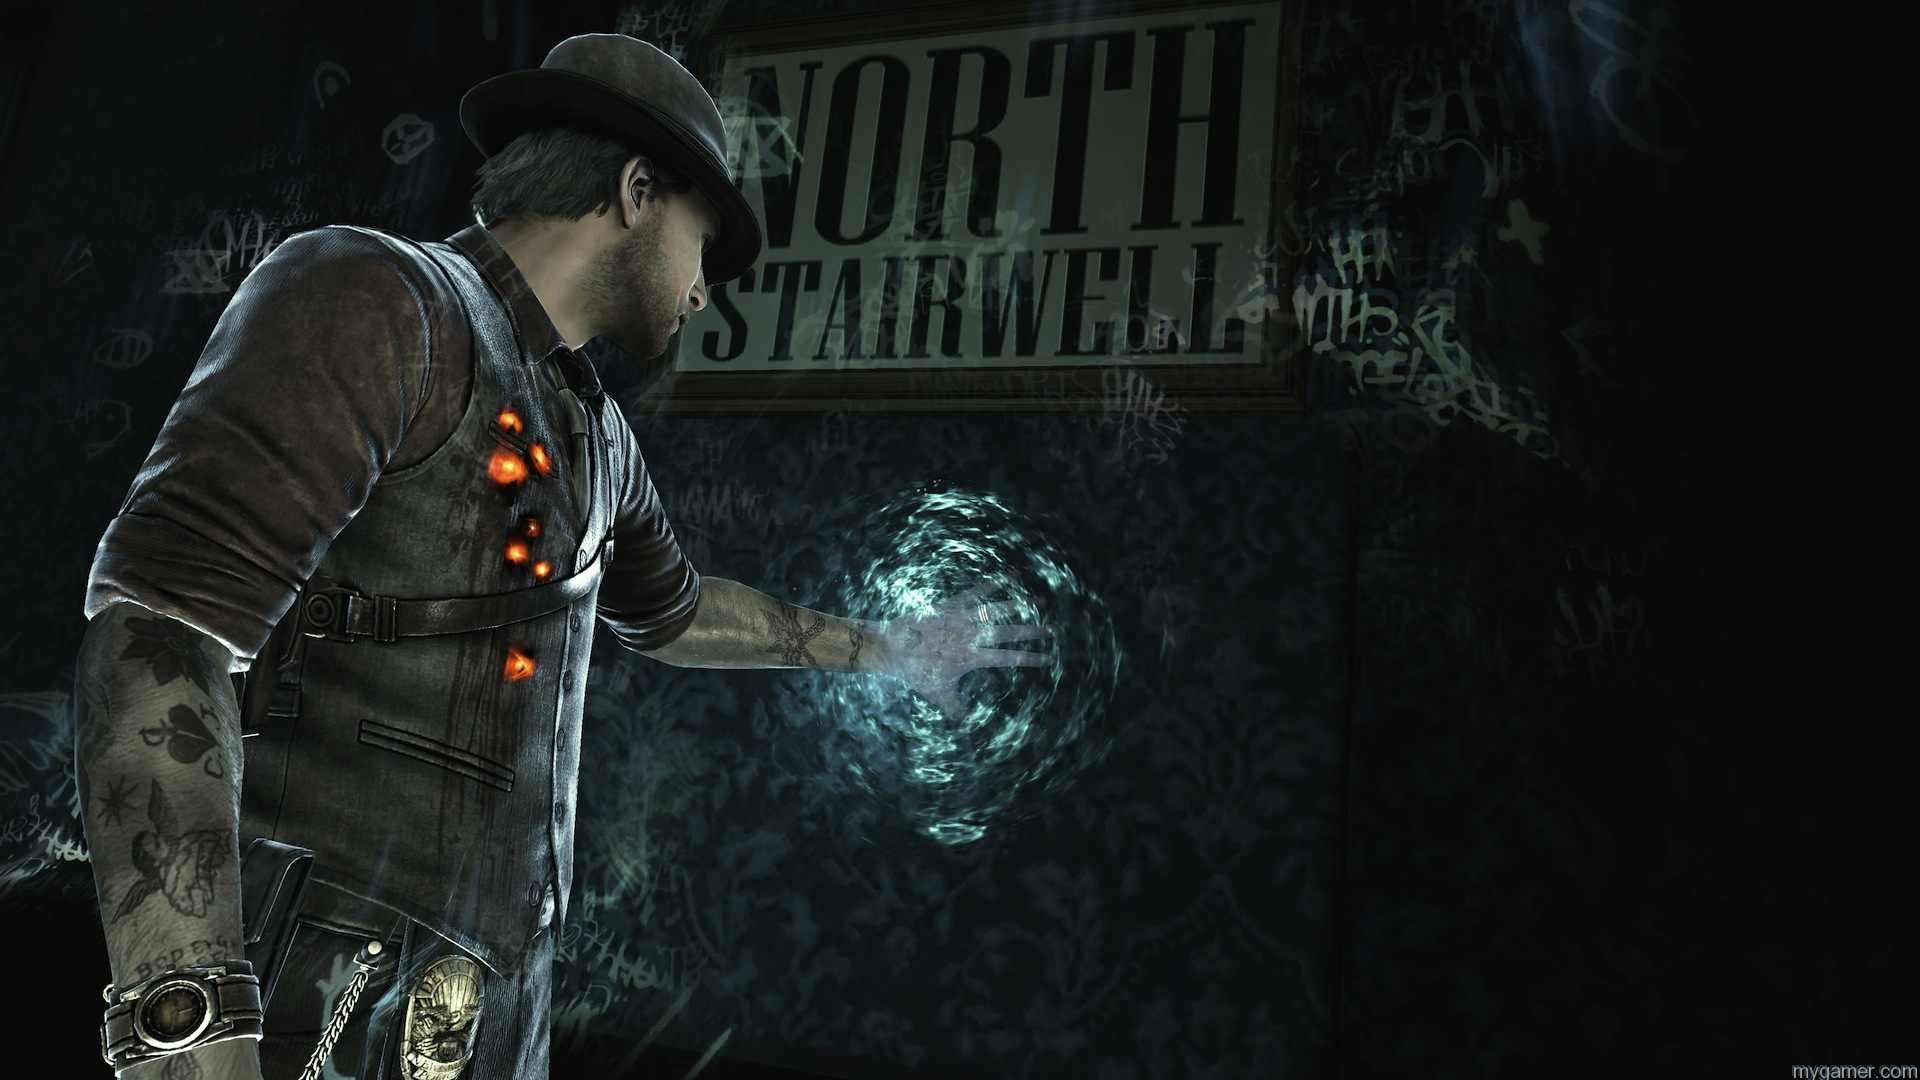 Going through walls in Murdered Soul Suspect Murdered: Soul Suspect (Xbox One) Review Murdered: Soul Suspect (Xbox One) Review Fate Screenshots v1 05 copy noscale